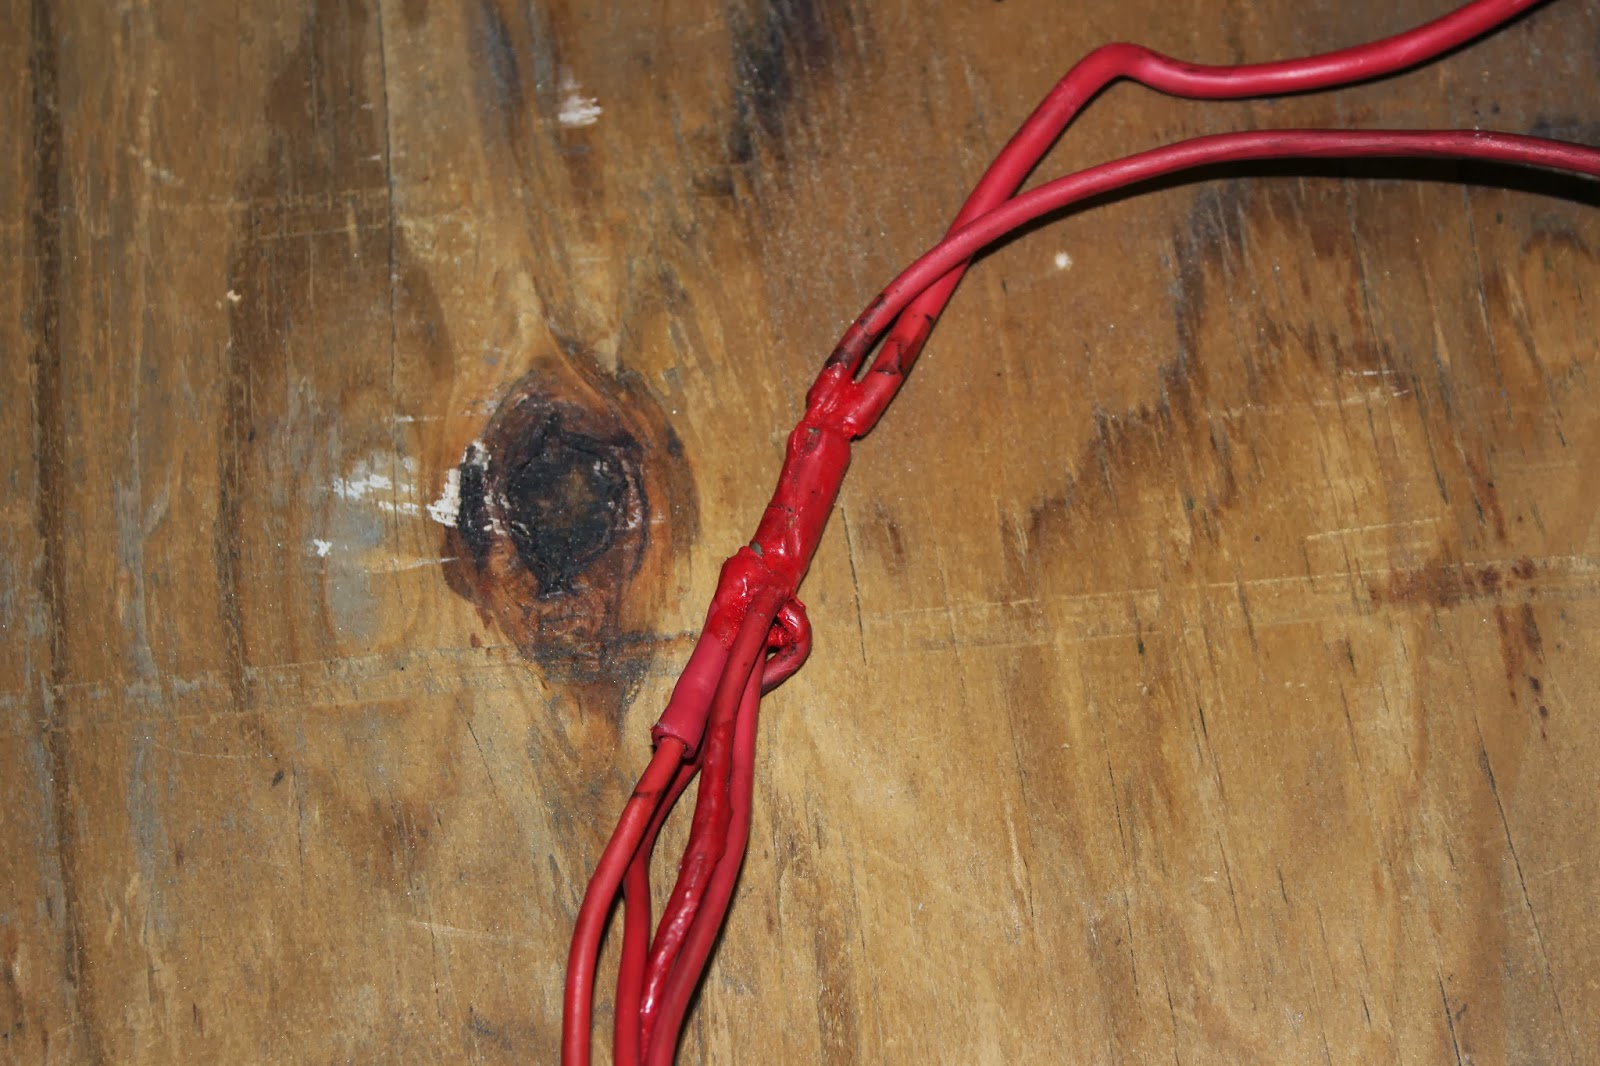 1971 Saab Sonett Iii Restoration Wiring Wire Harness Labeled One Of Dingus Quality Splicing Jobs This Was Next To The Starter